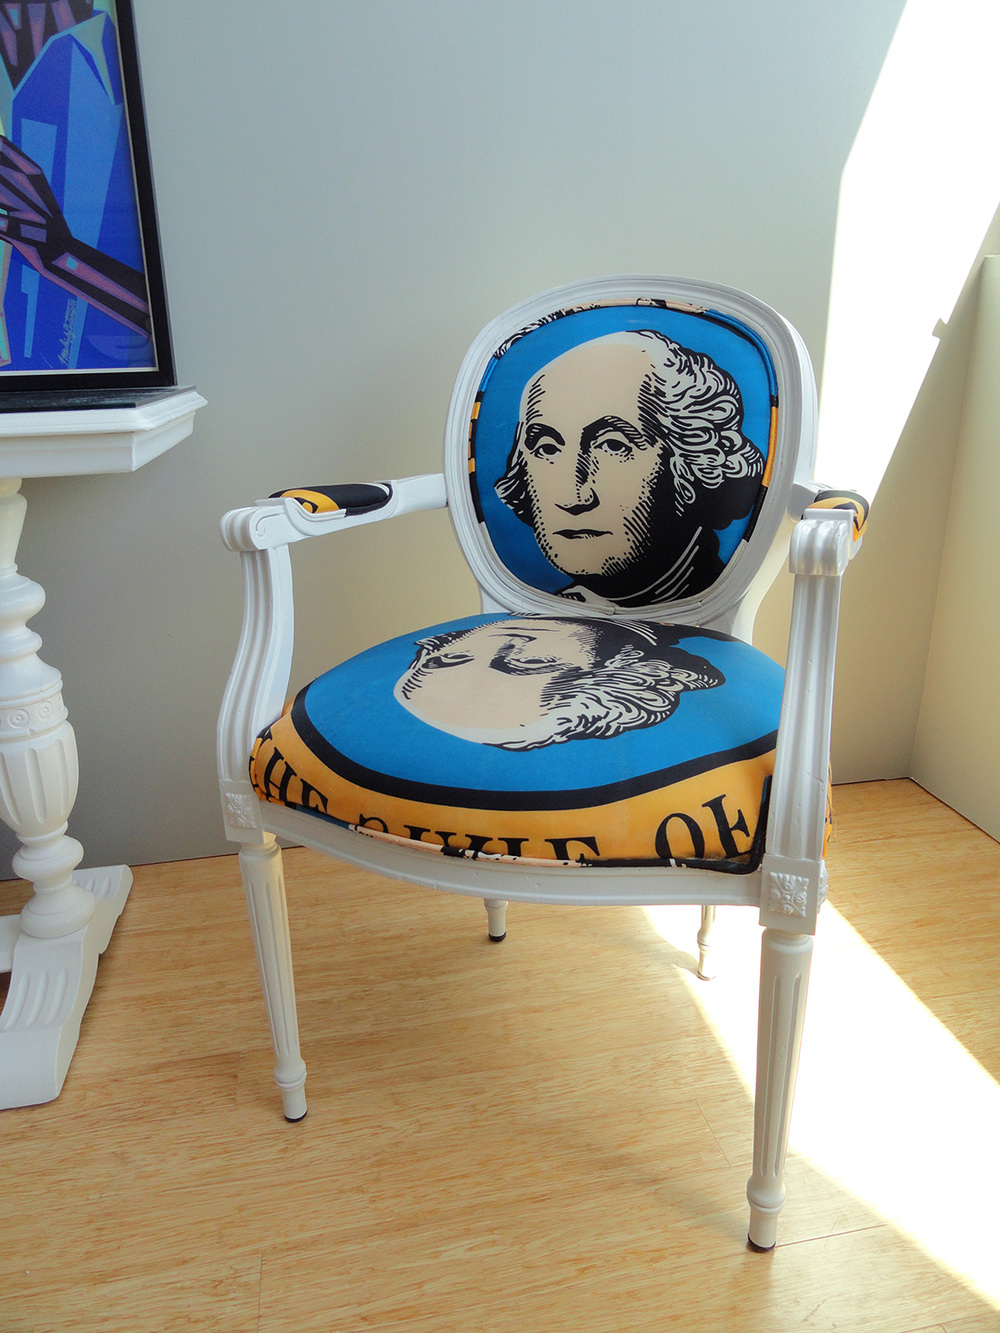 George Washington chairs, made from flea-market granny chairs reupholstered with $2 a yard Washington State nylon flags from a blemished roll.